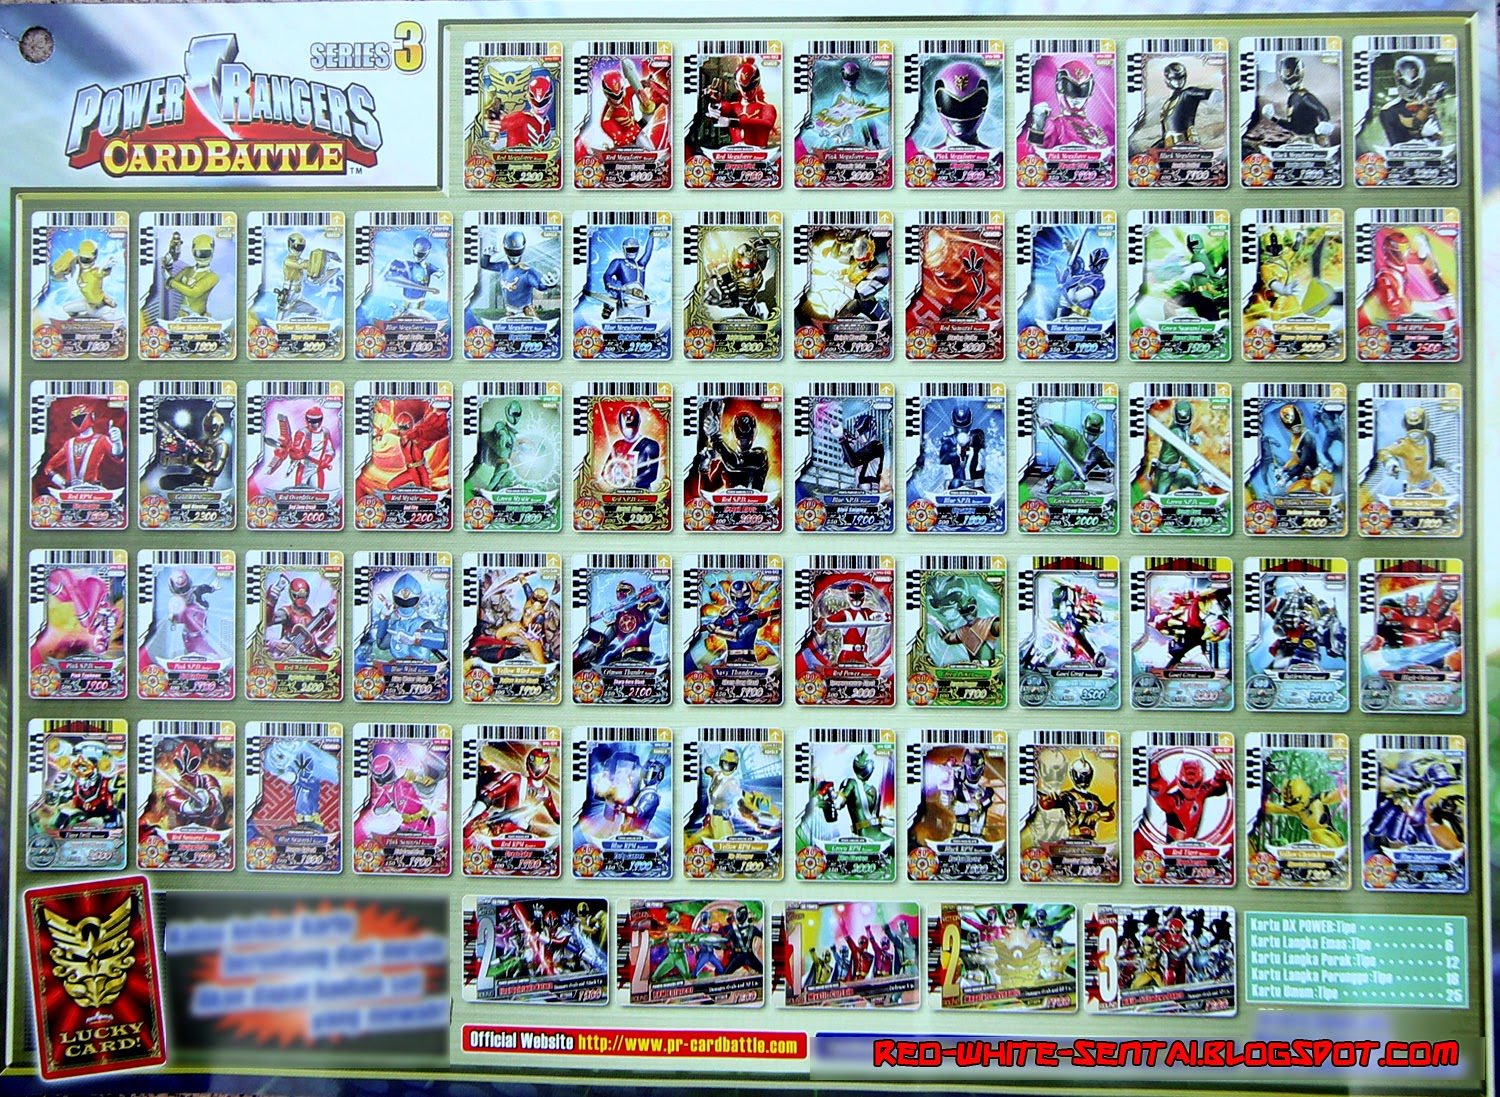 and white sentai power ranger card battle series 3 card list